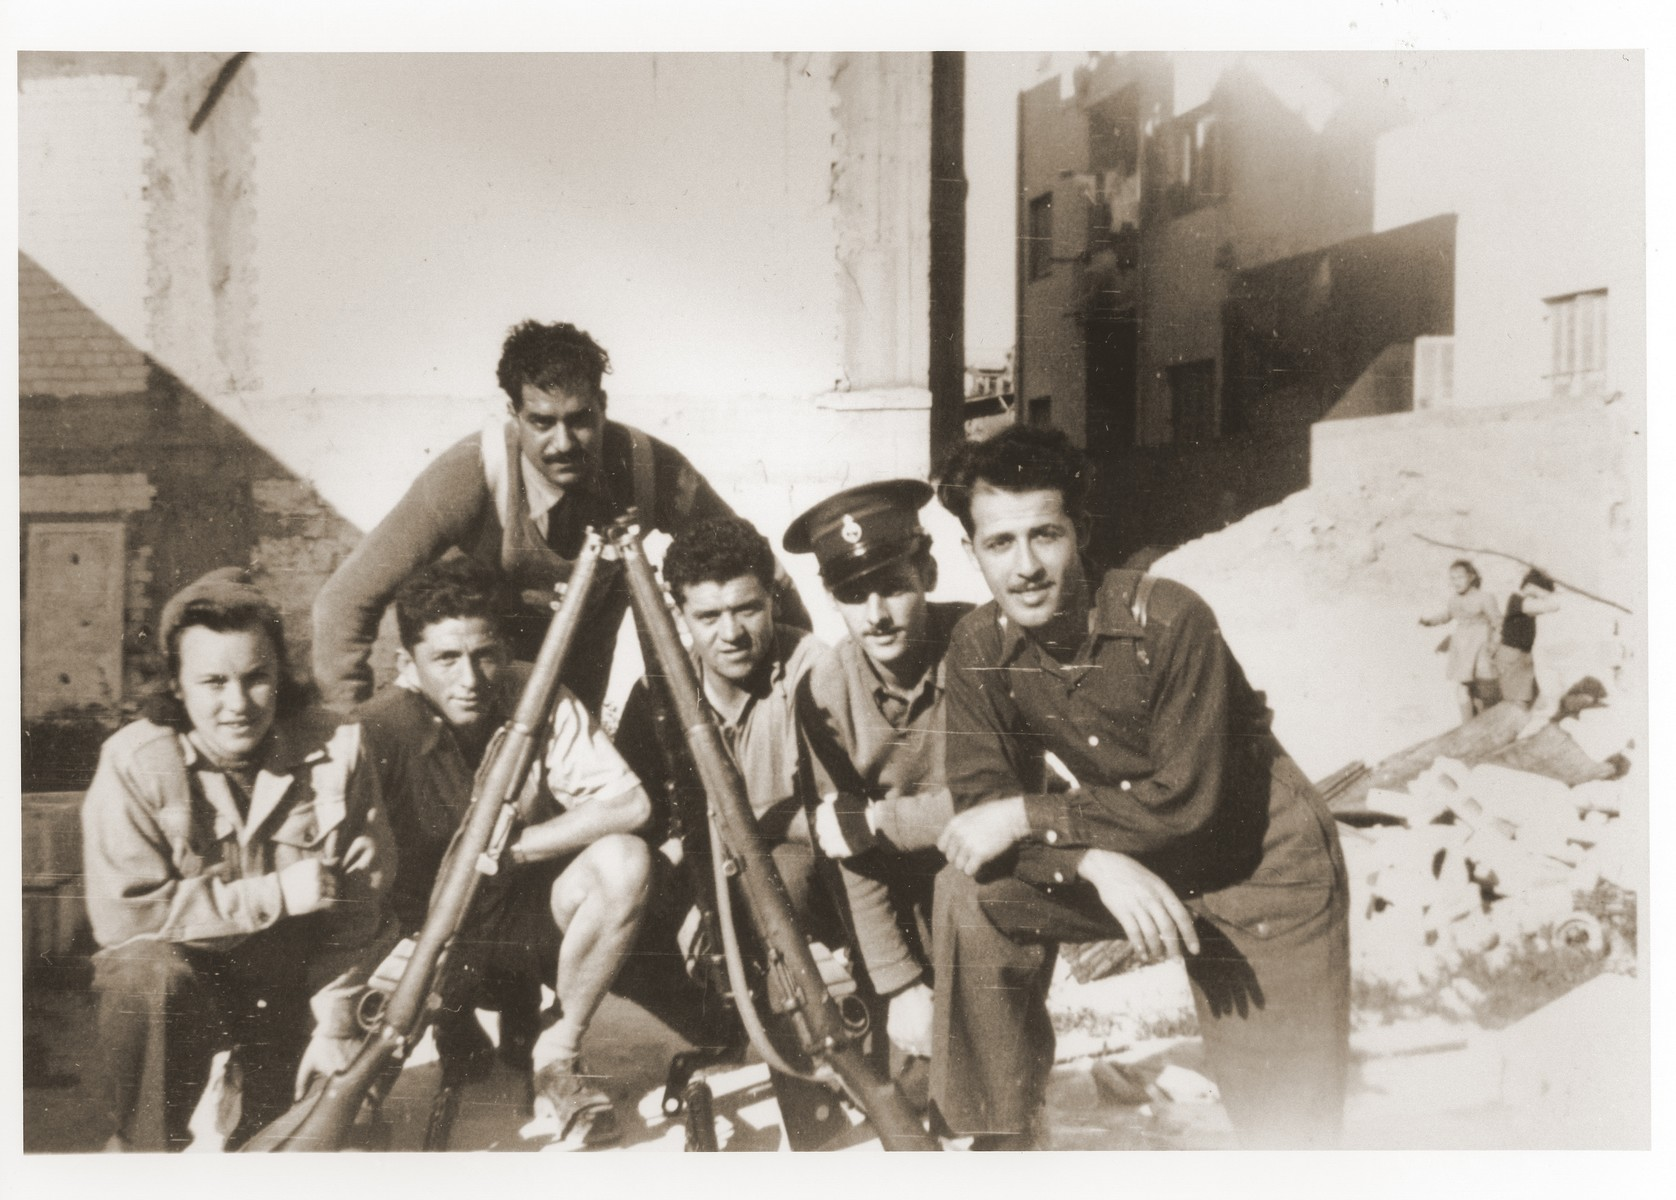 Members of a Haganah unit pose with their rifles.  Among those pictured is Saba Fiszman.